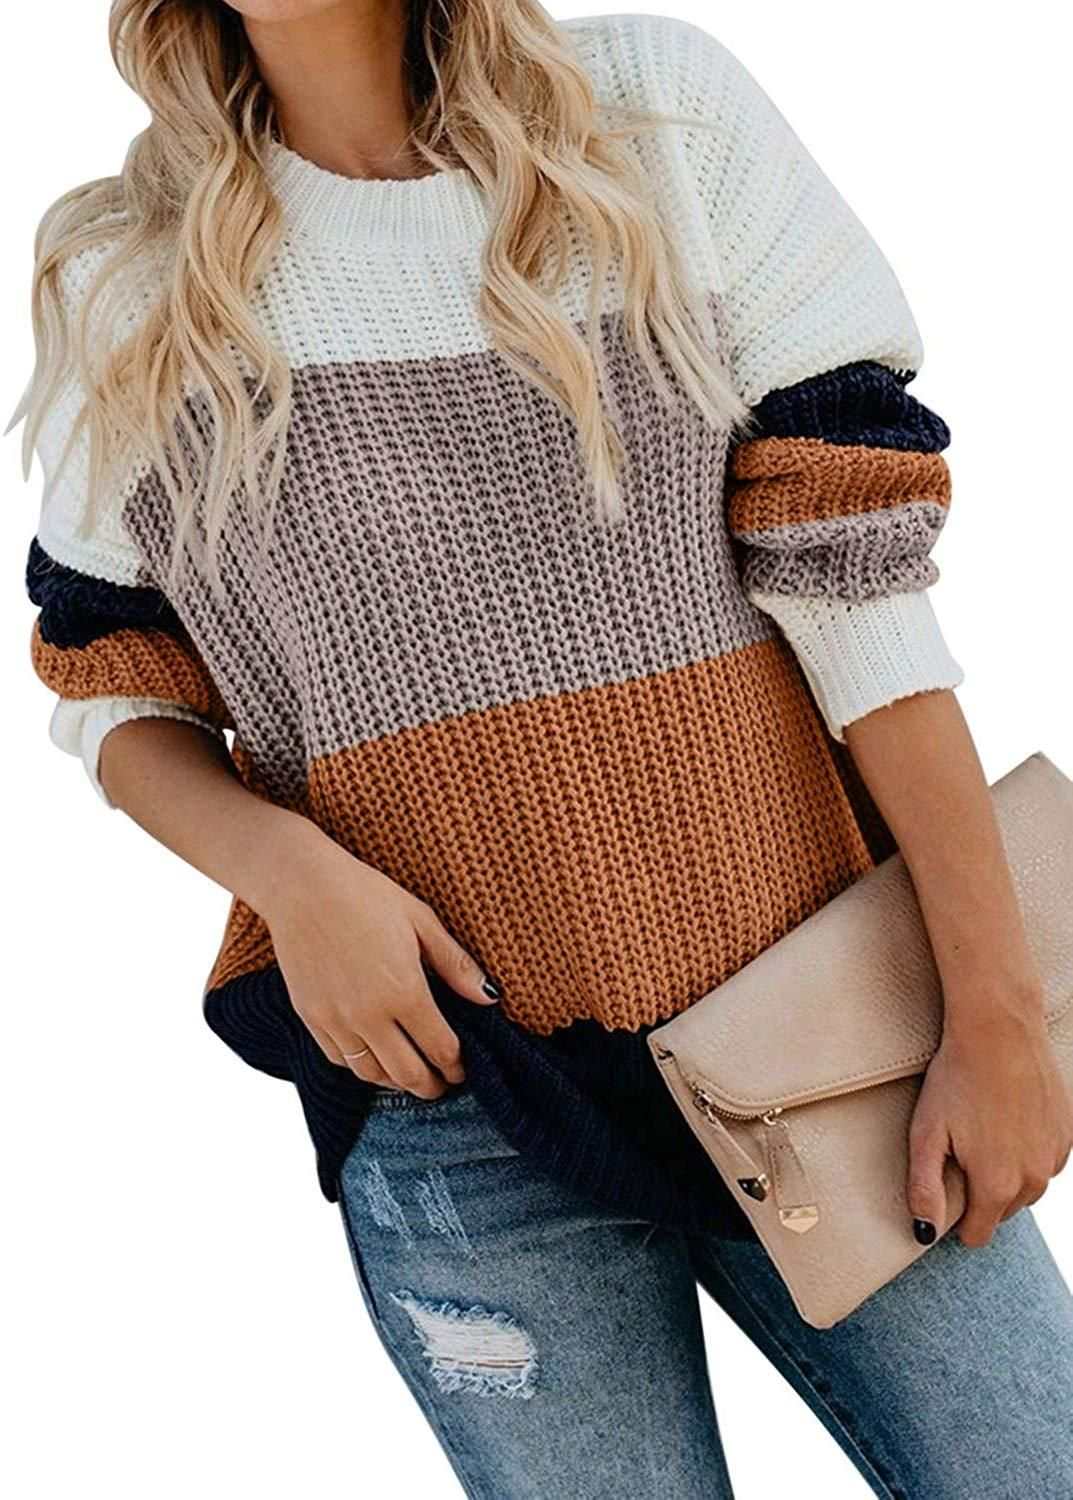 Sweaters for Women Oversized,Womens Long Sleeve Casual Crew Neck Striped Color Block Loose Knitted Pullover Sweater Tops